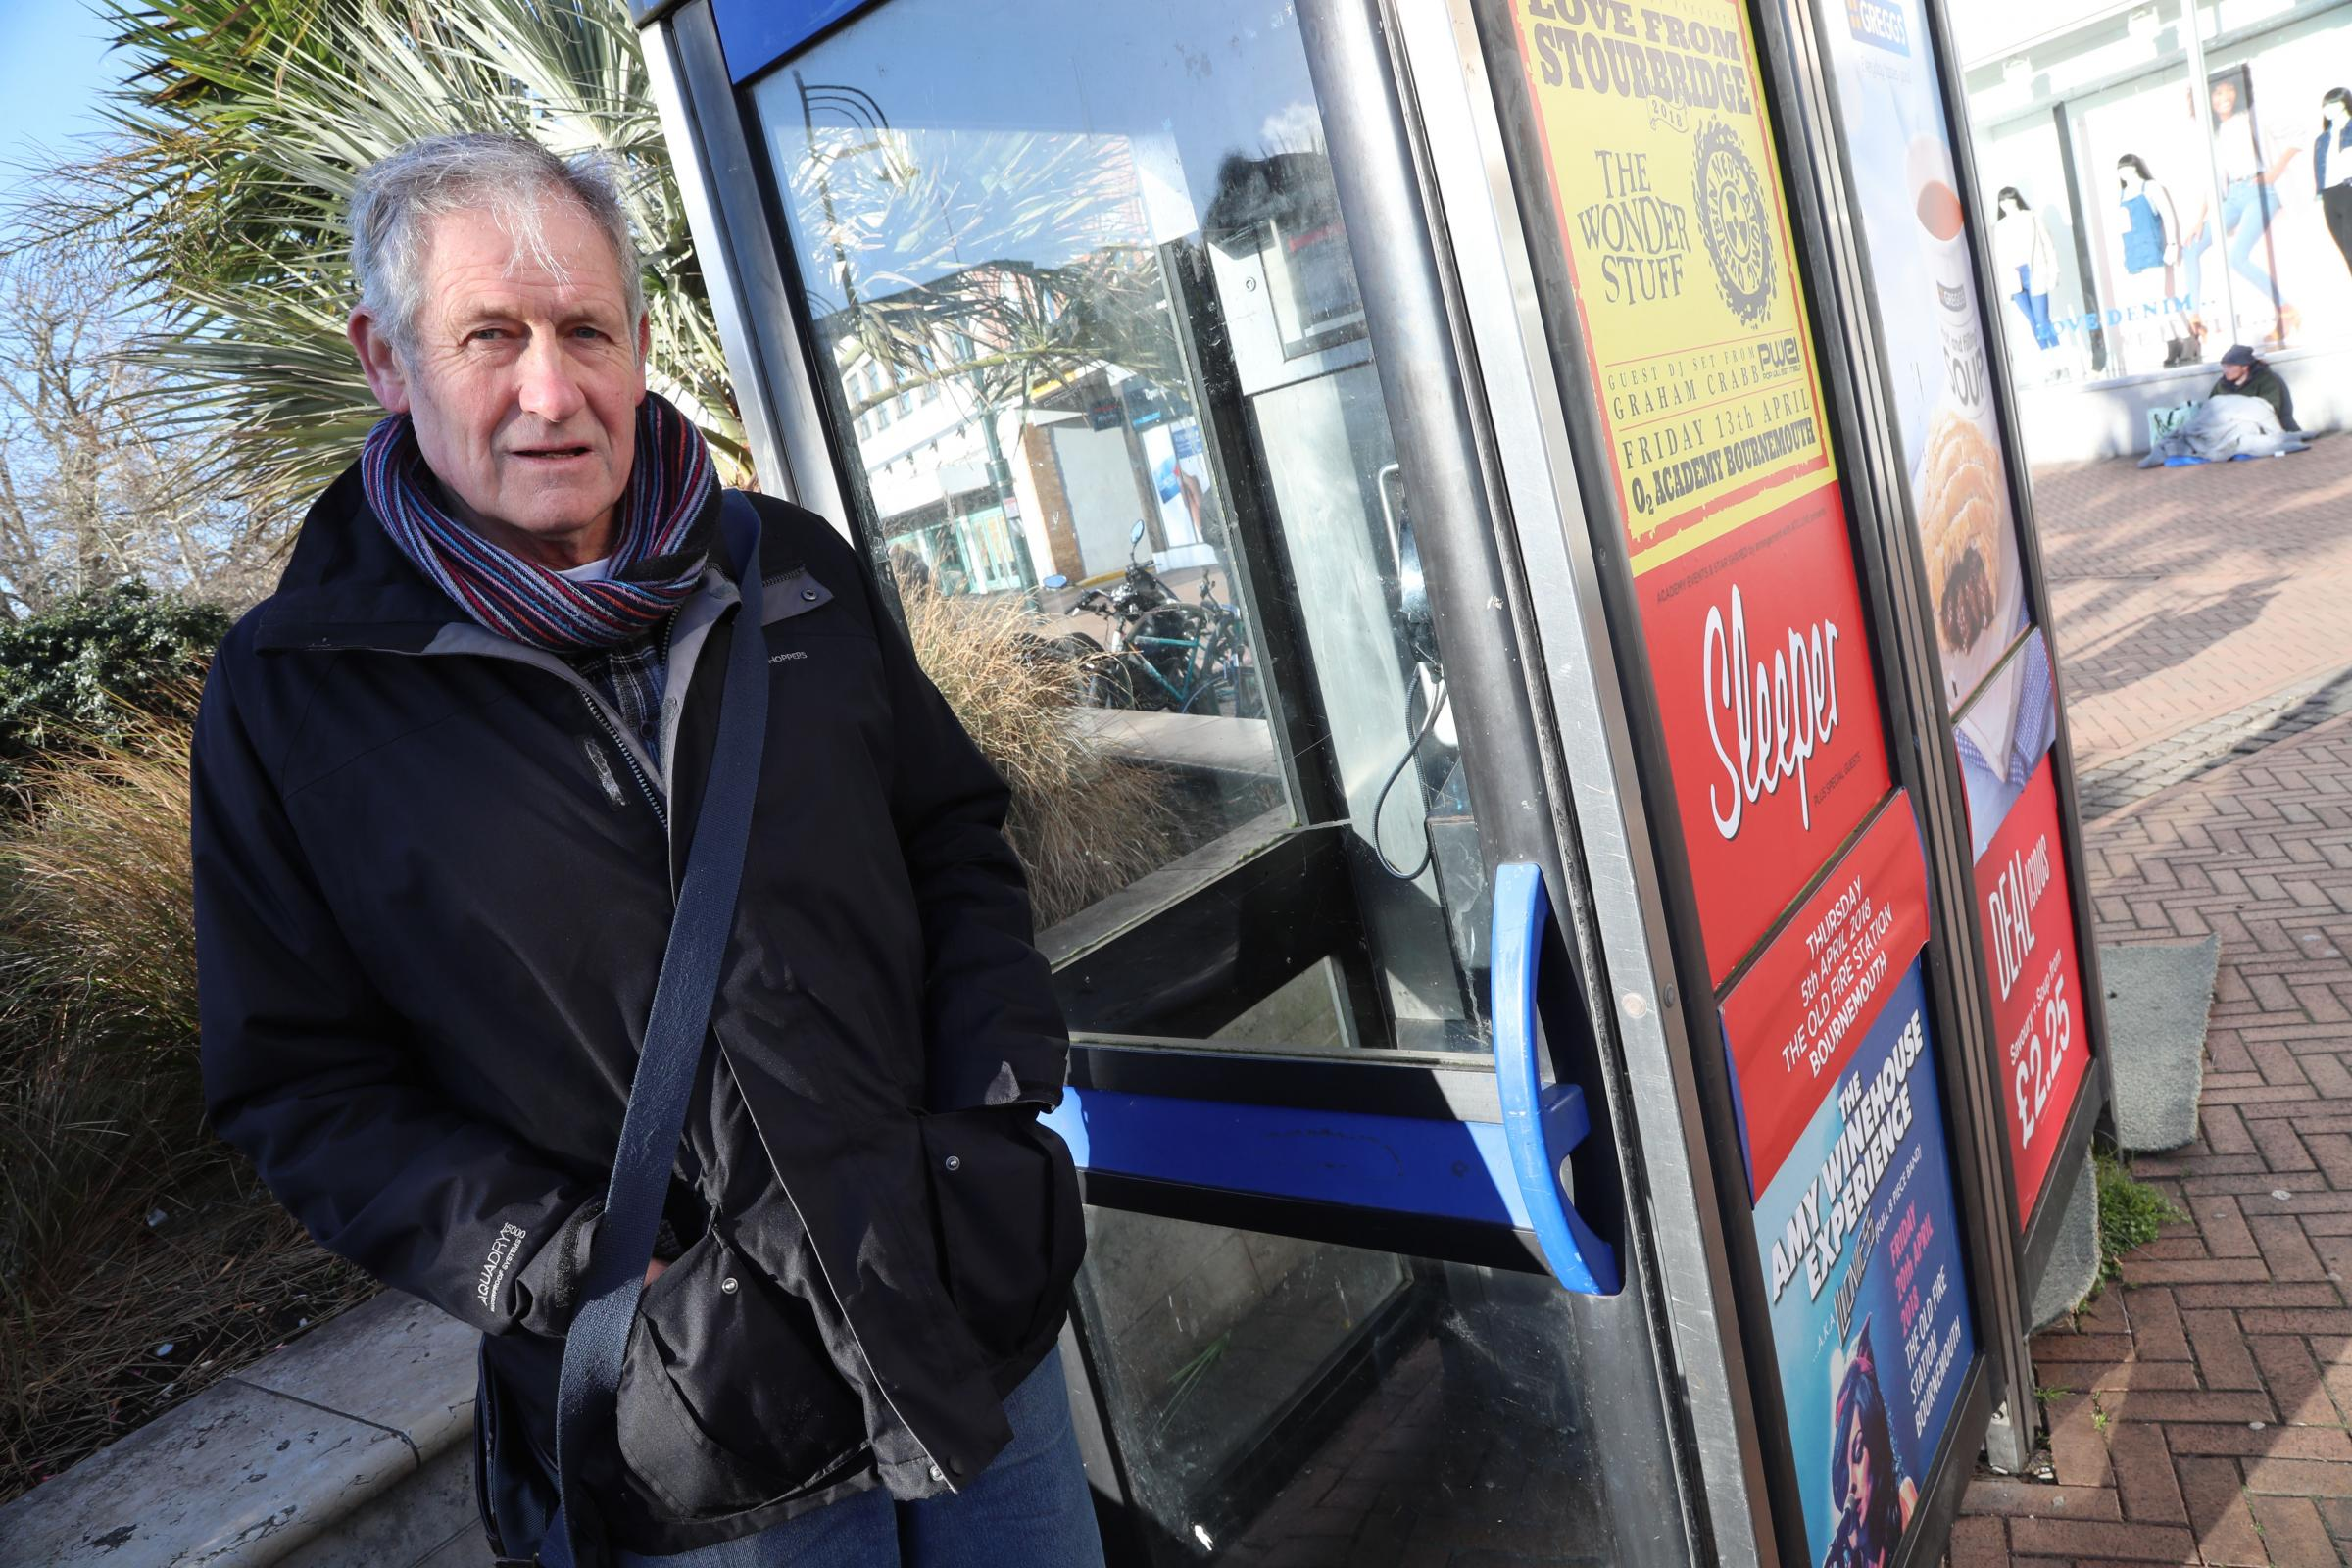 OUT OF ORDER: Dave Smith has represented the town centre for 25 years